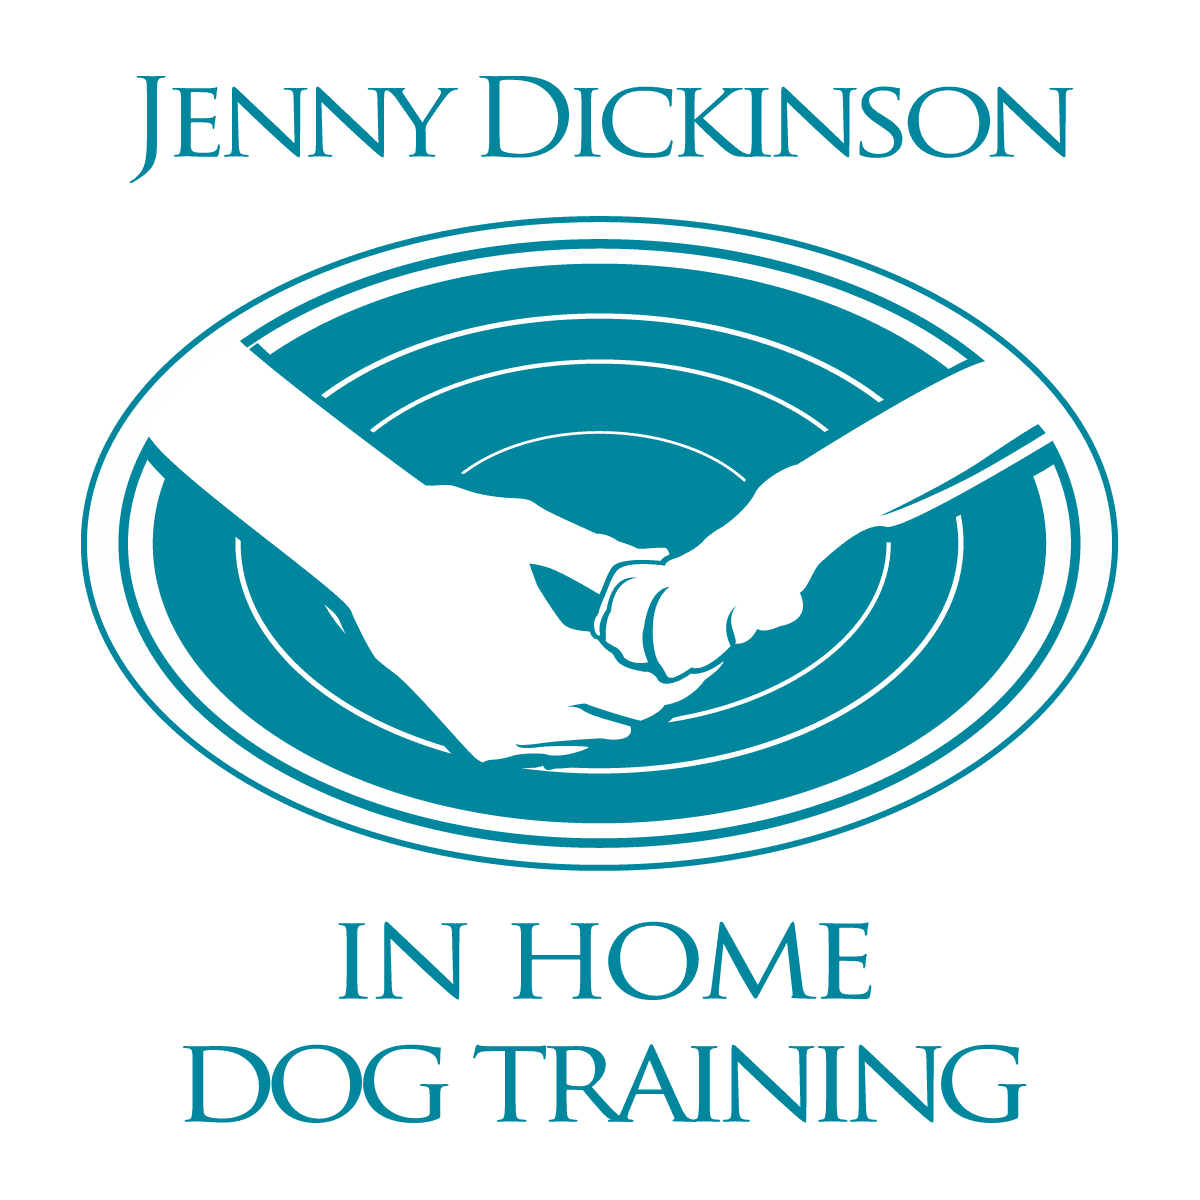 In Home Dog Training